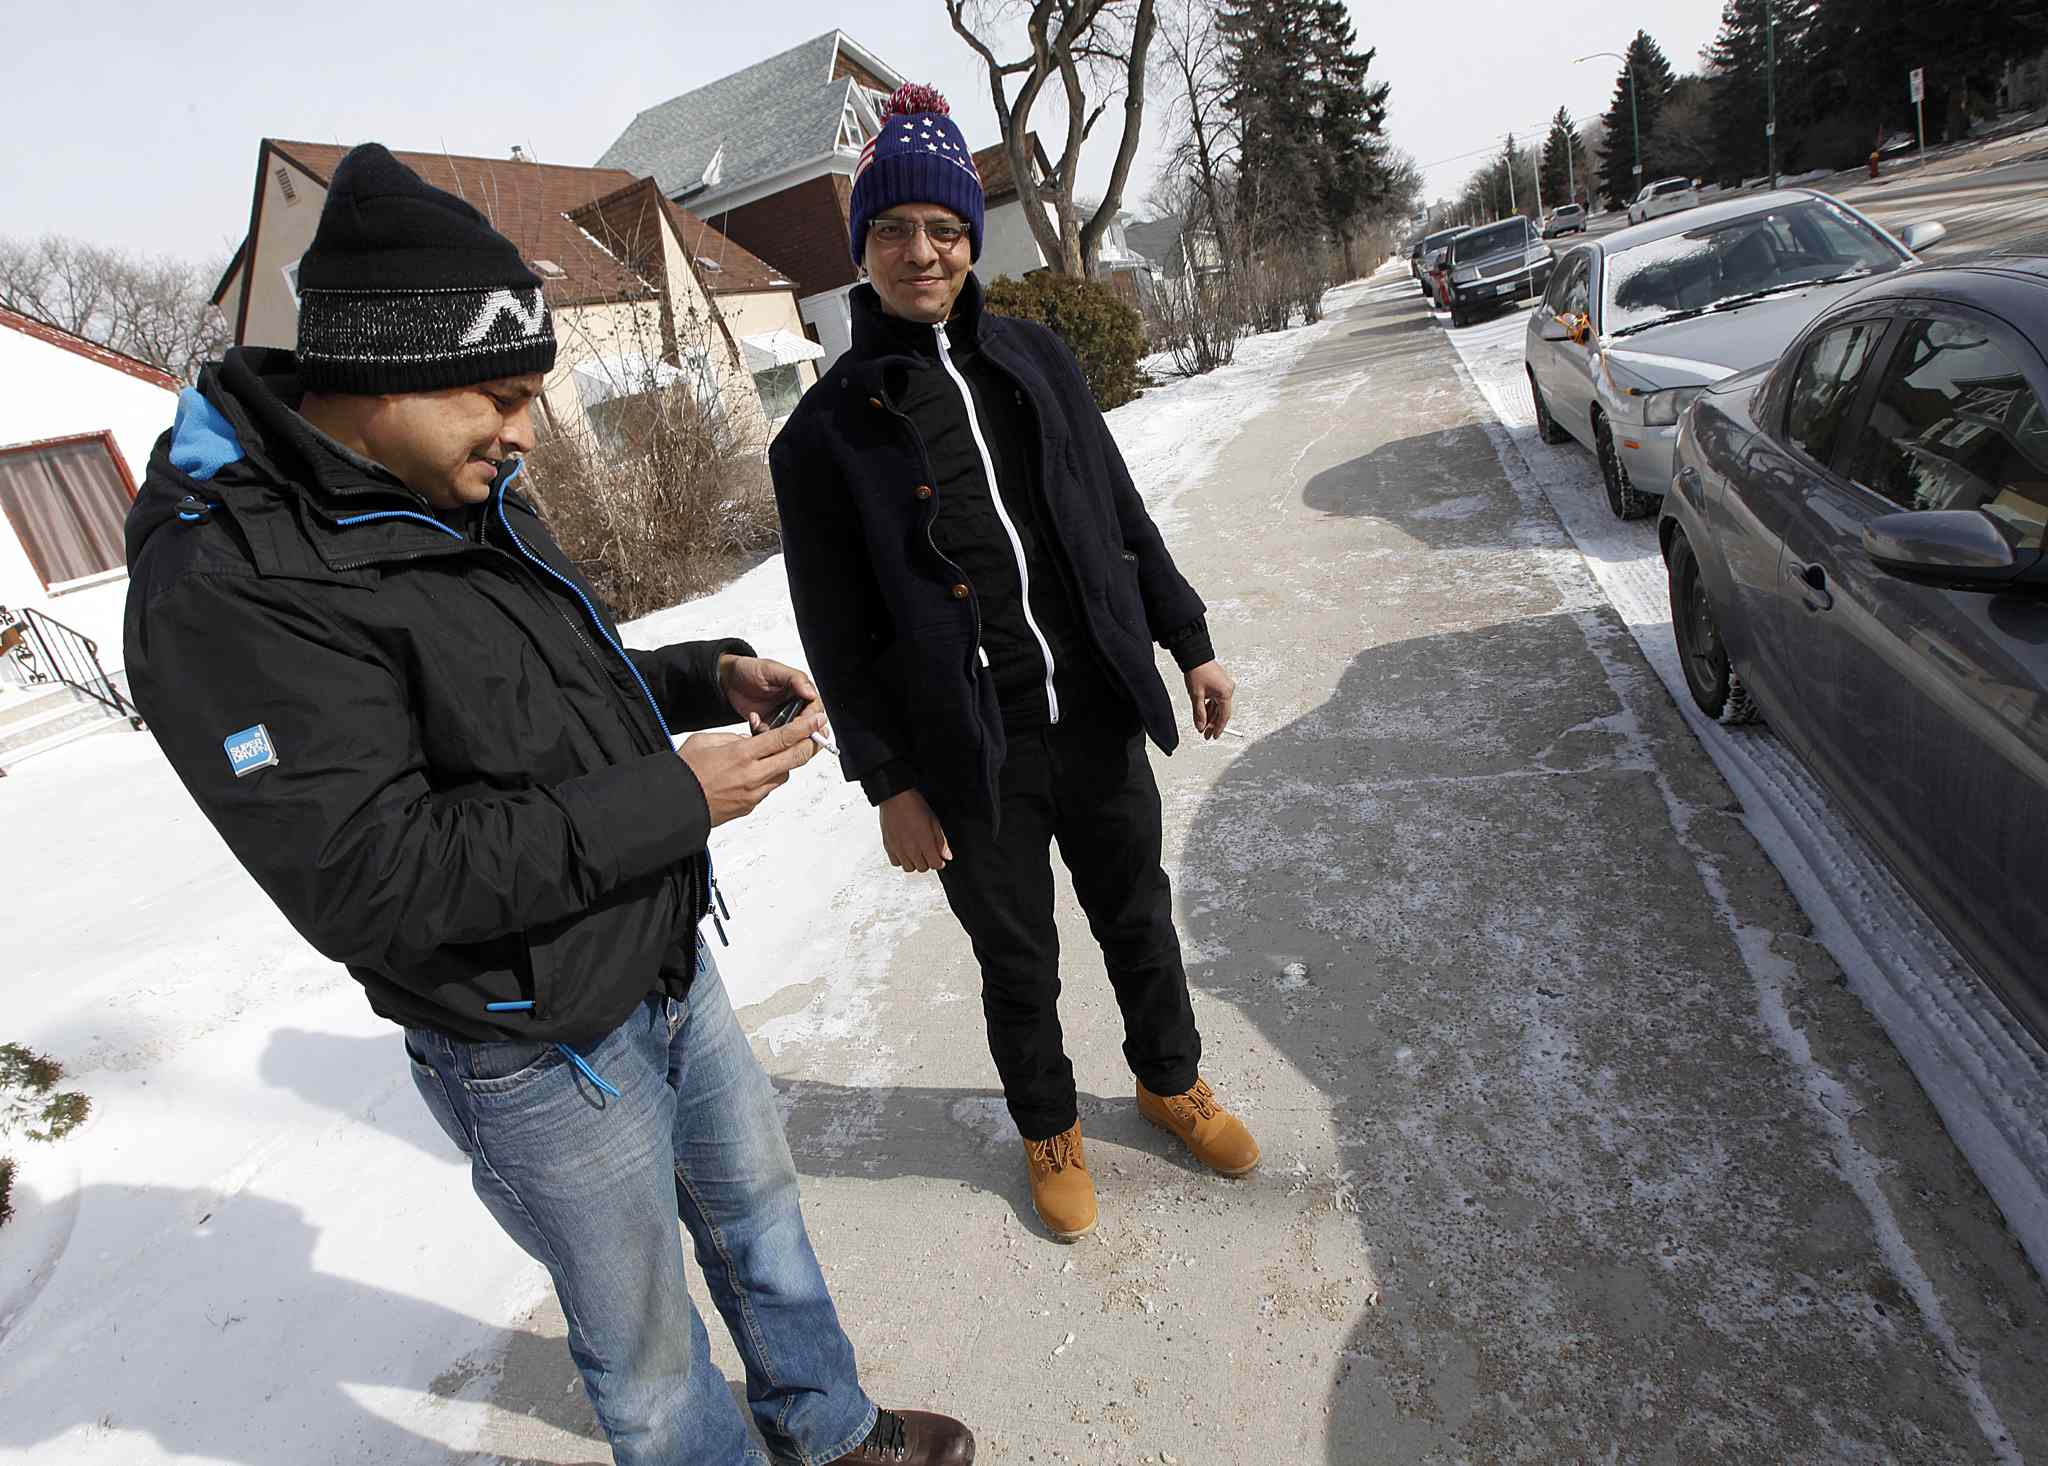 Both men plan to live in Winnipeg if they're allowed to remain in Canada.